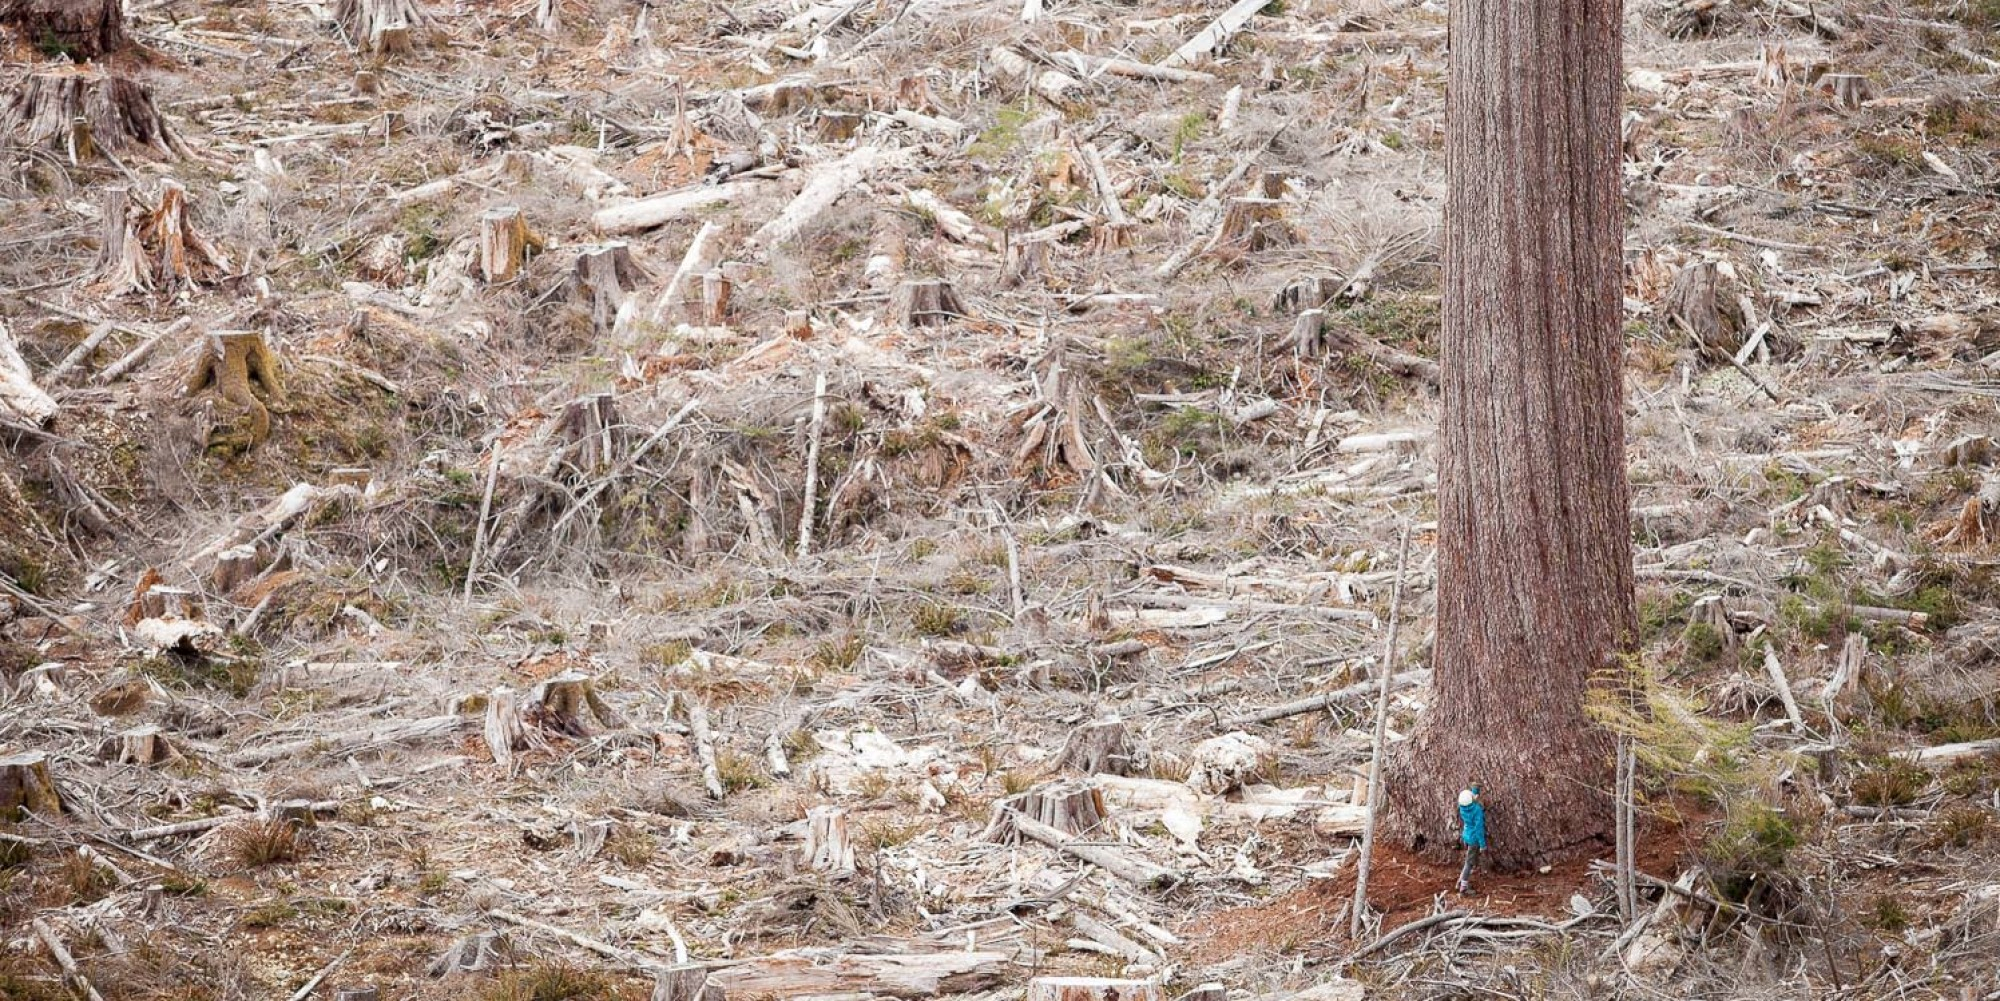 Is BC cutting down all its old-growth forest?